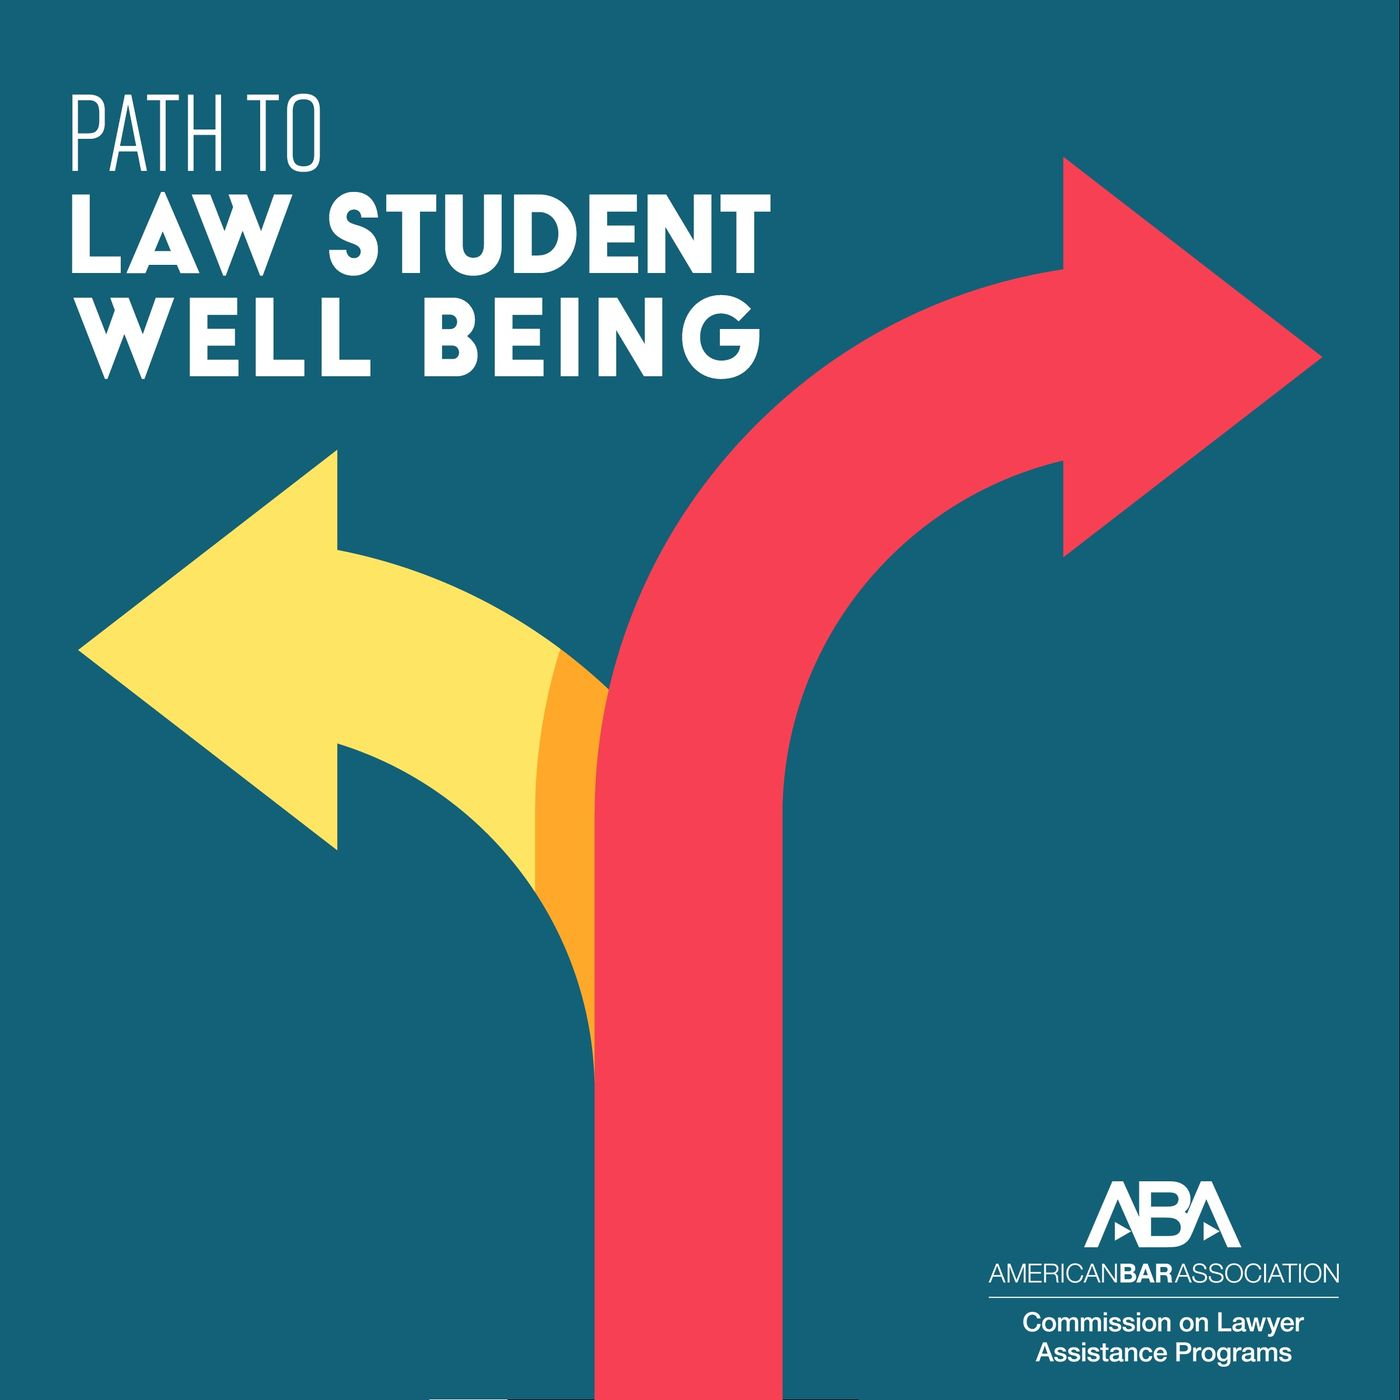 Episode 7 - Where Are We On the Path to Law Student Well-Being?